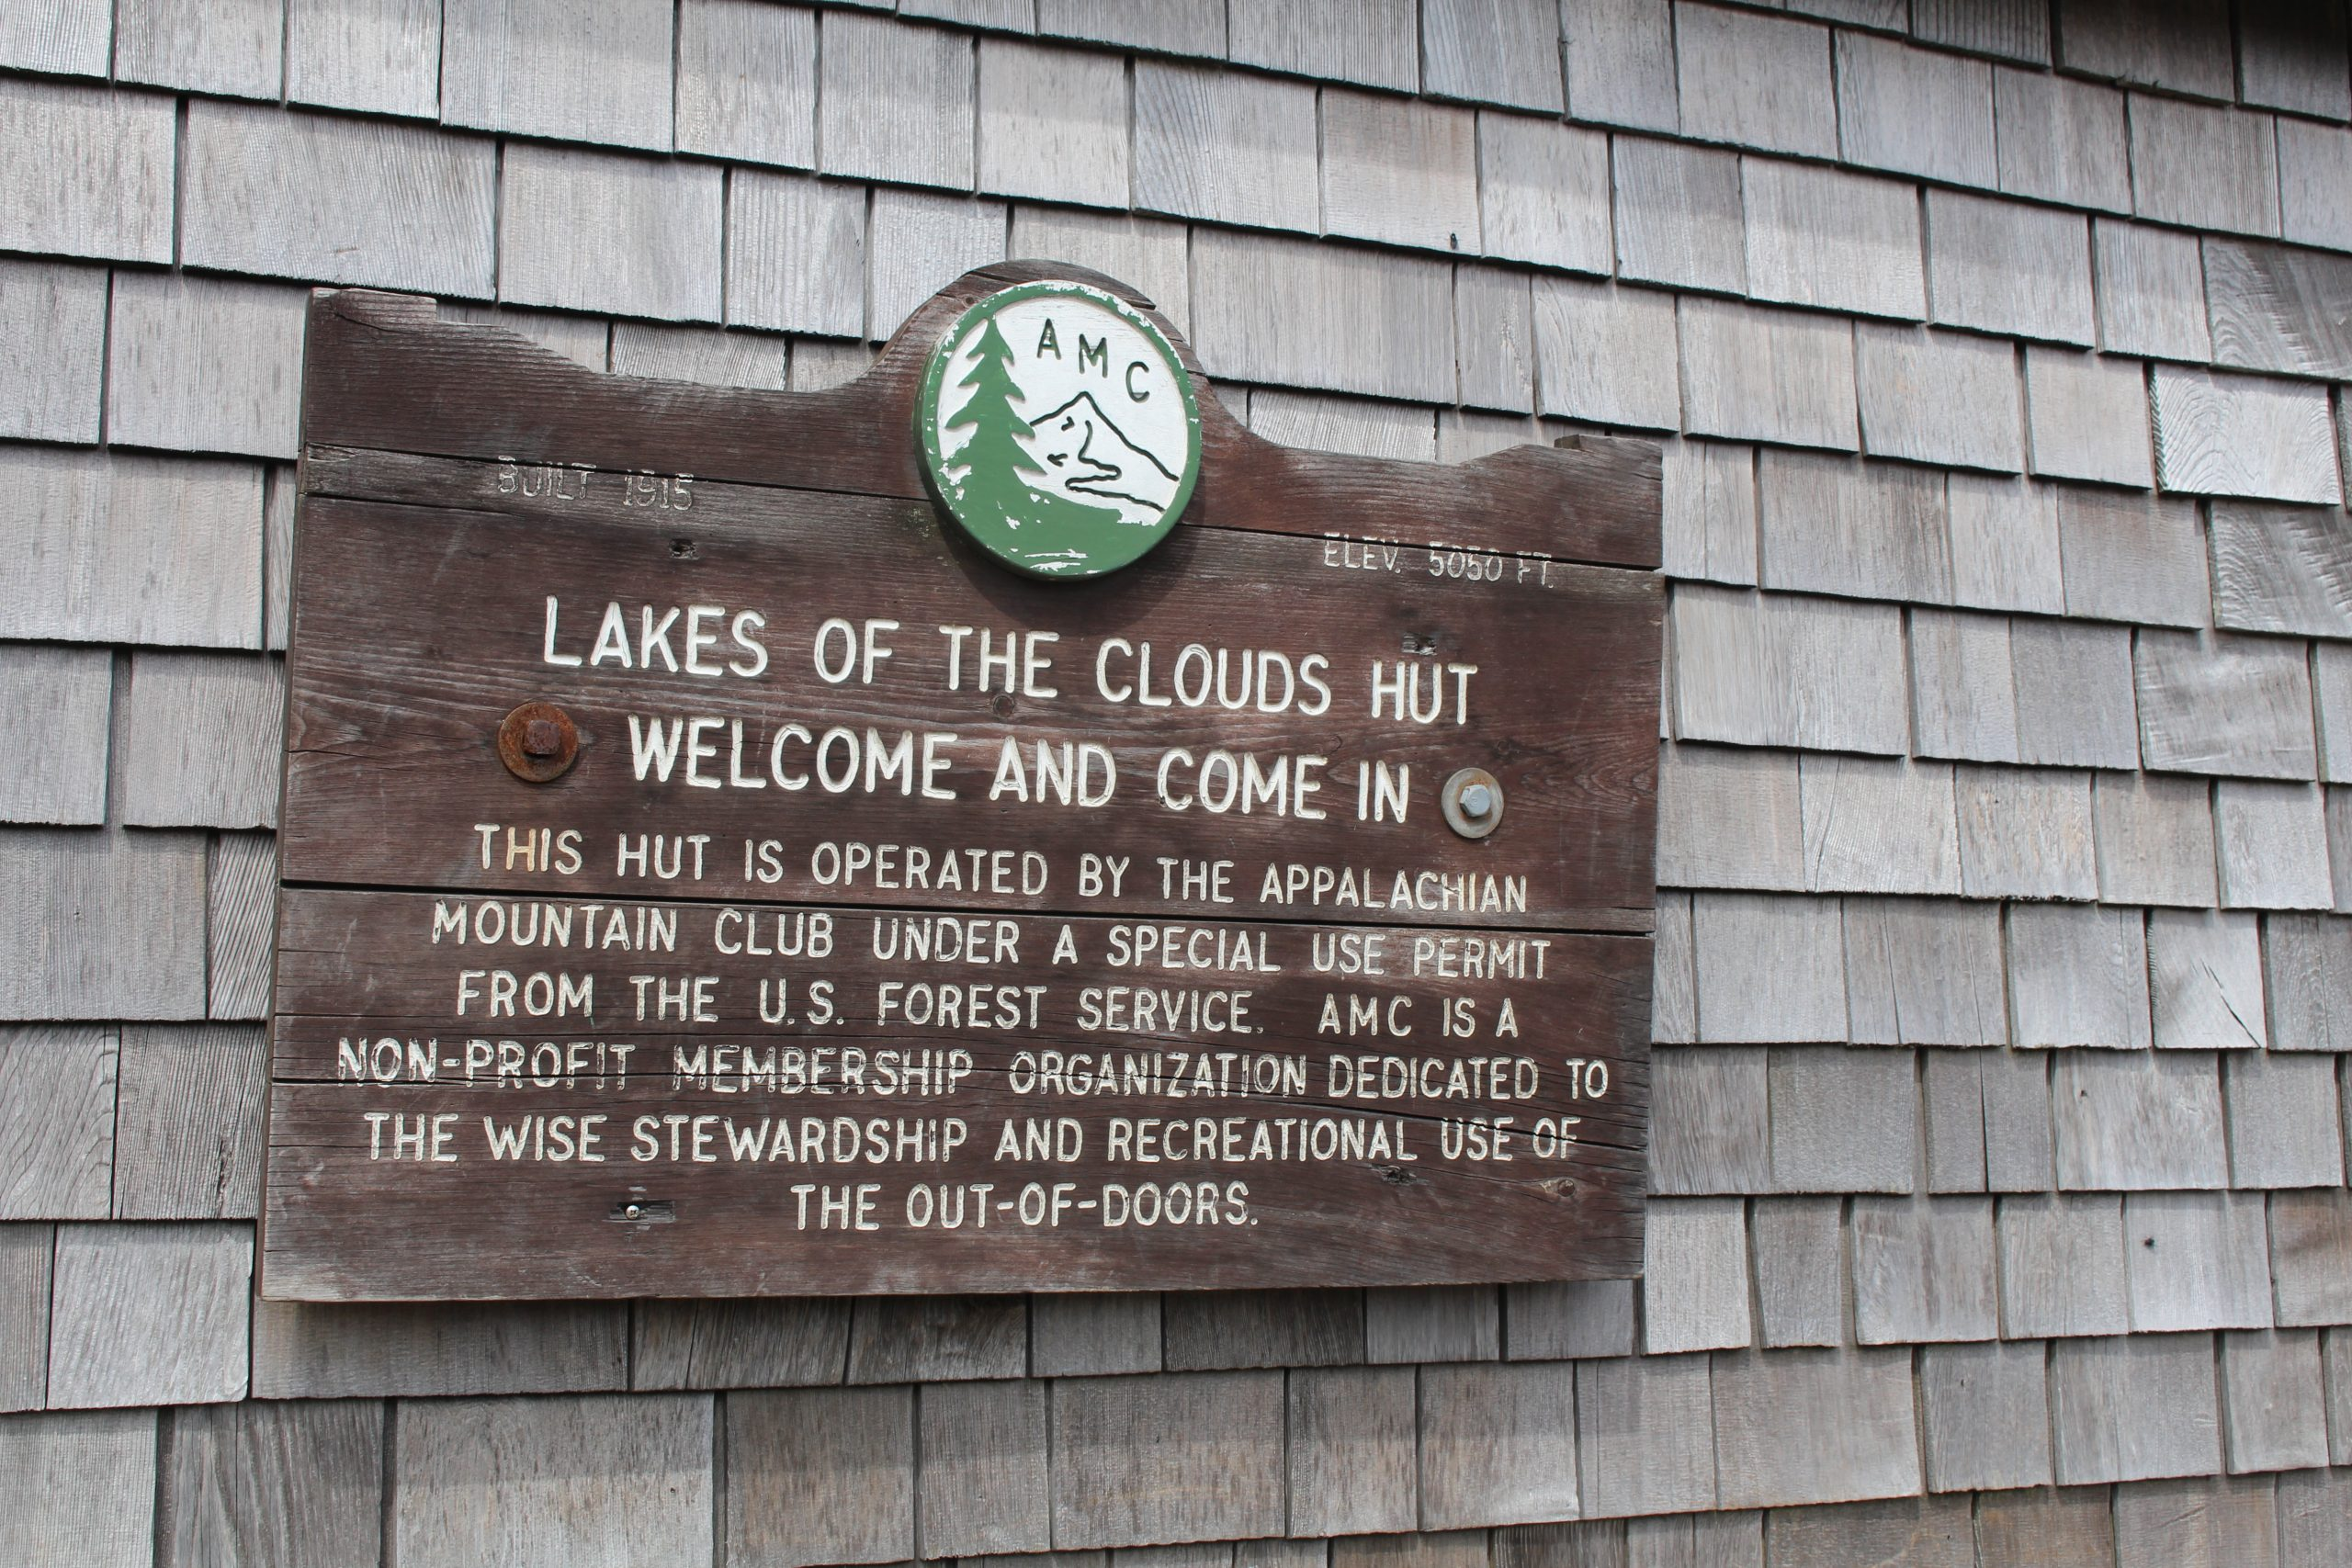 Lake of the Clouds hut